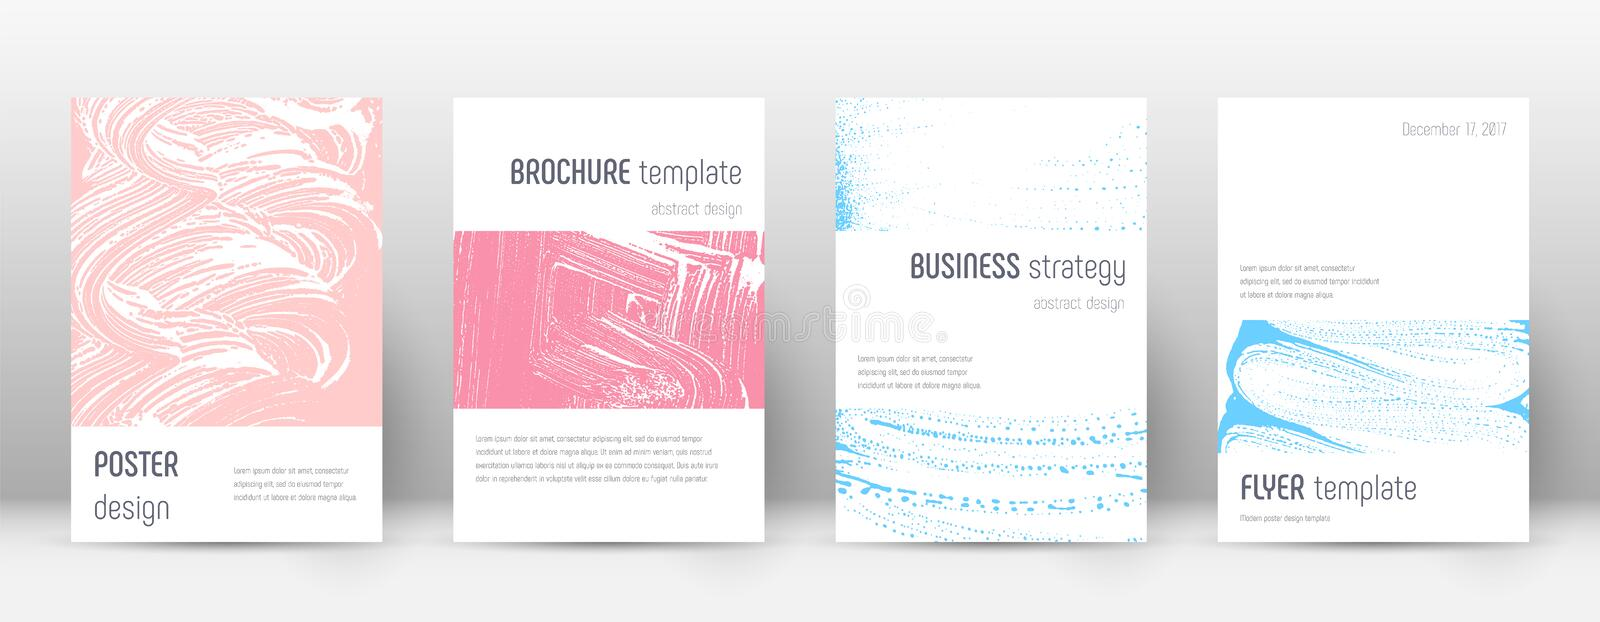 Cover page design template. Minimalistic brochure. Layout. Classic trendy abstract cover page. Pink and blue grunge texture background. Worthy poster royalty free illustration